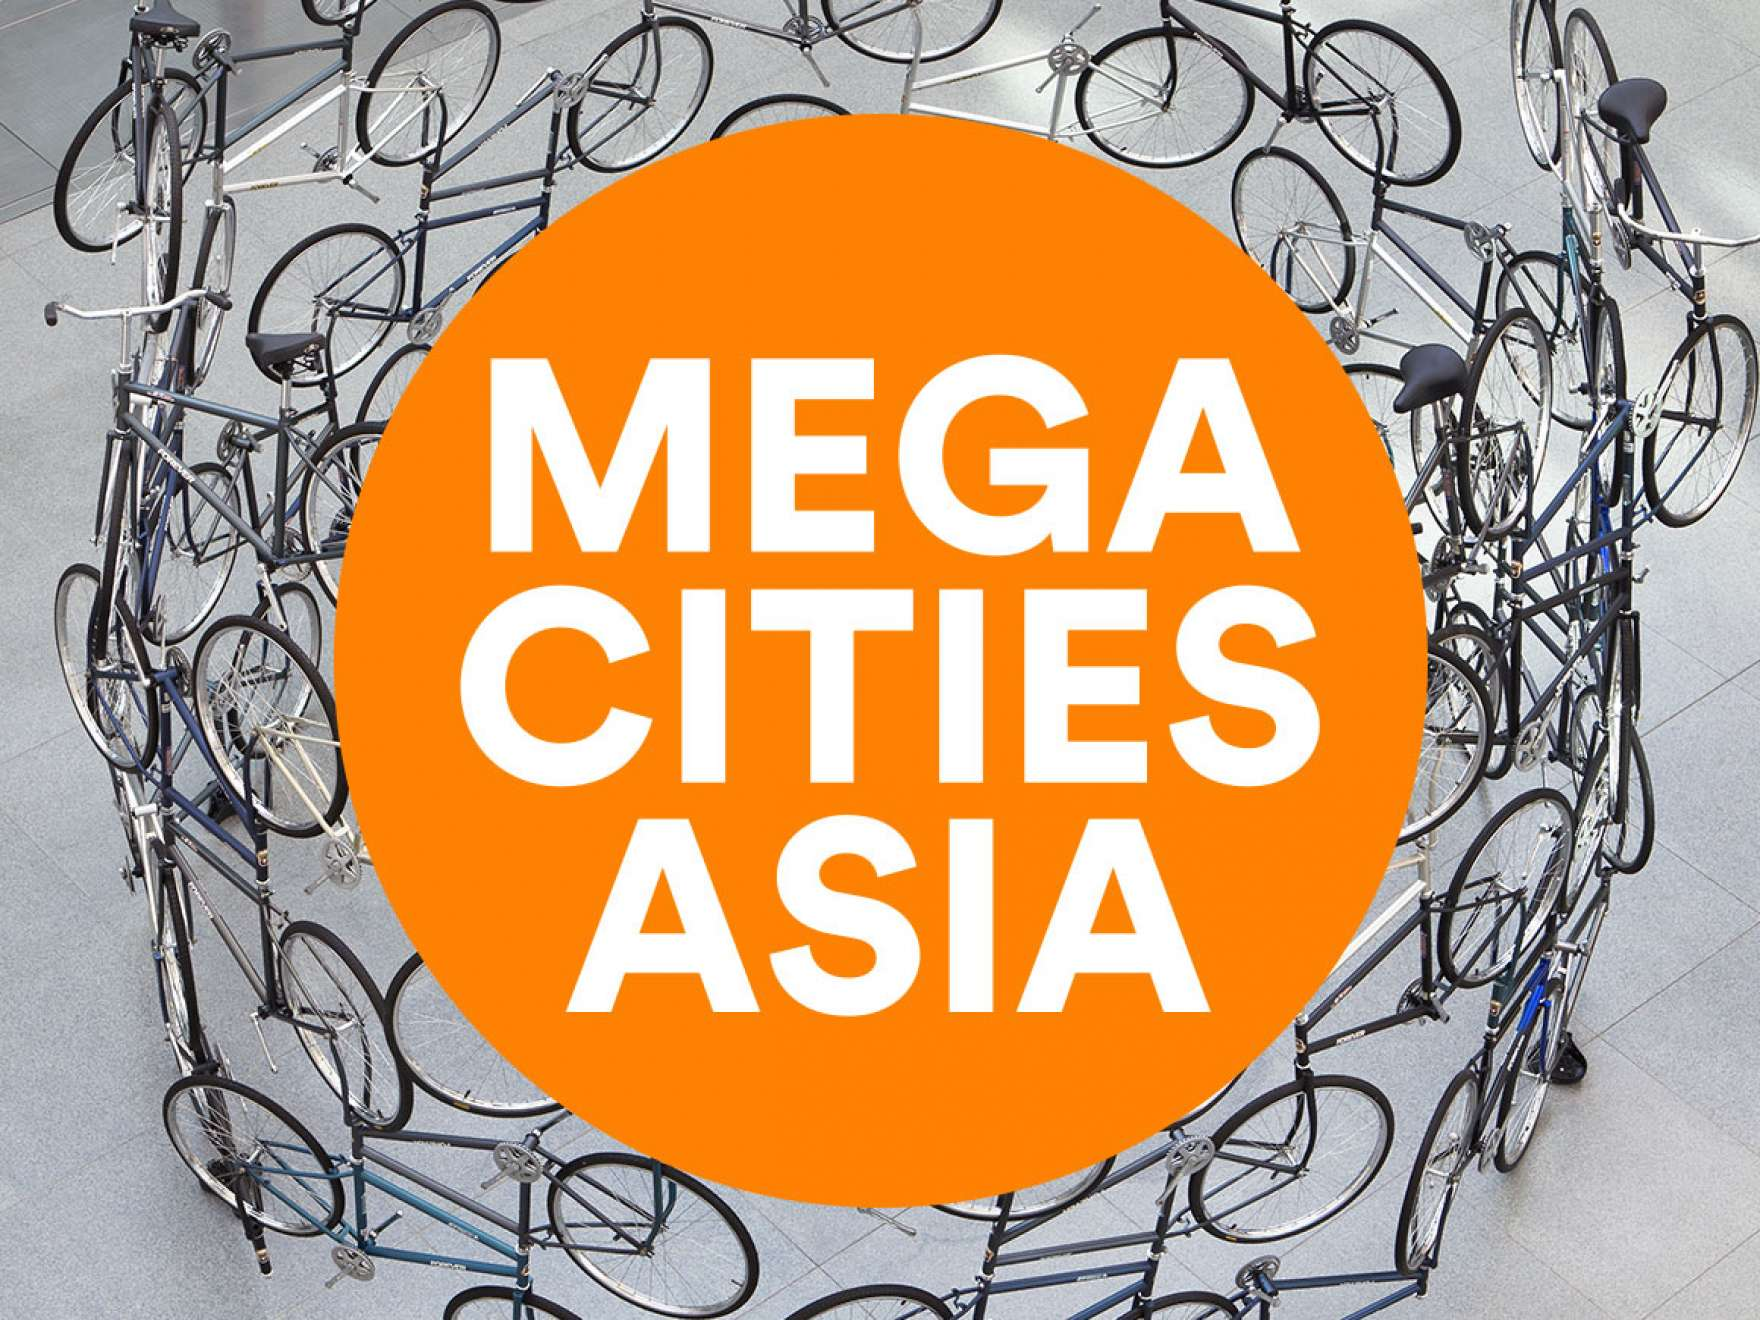 Megacities Asia logo